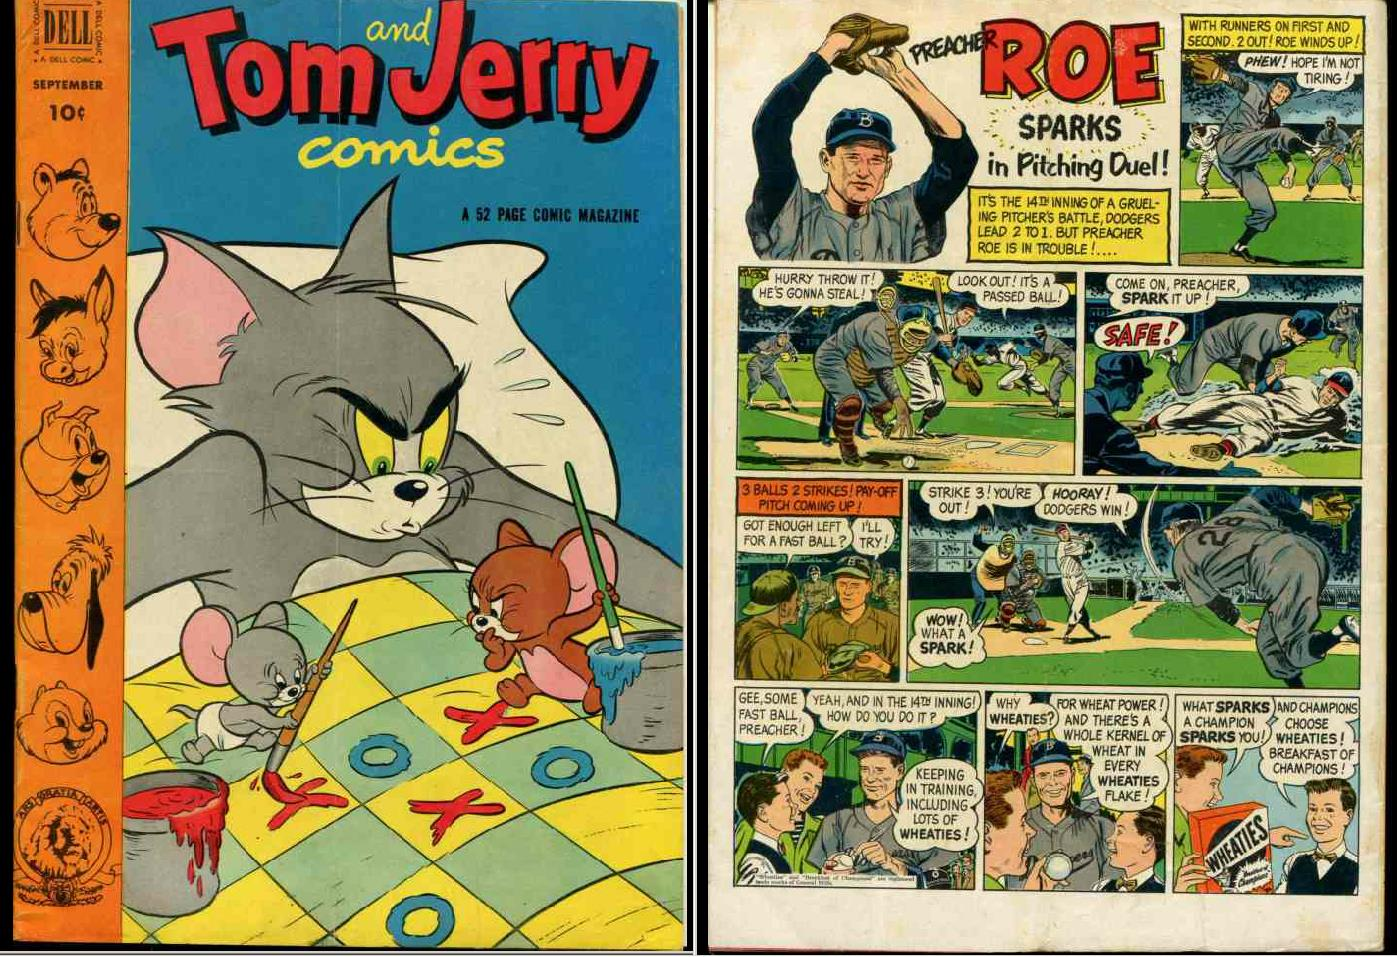 Comic: DELL 1952 - PREACHER ROE AD back TOM & JERRY #98 (10 cents) Baseball cards value